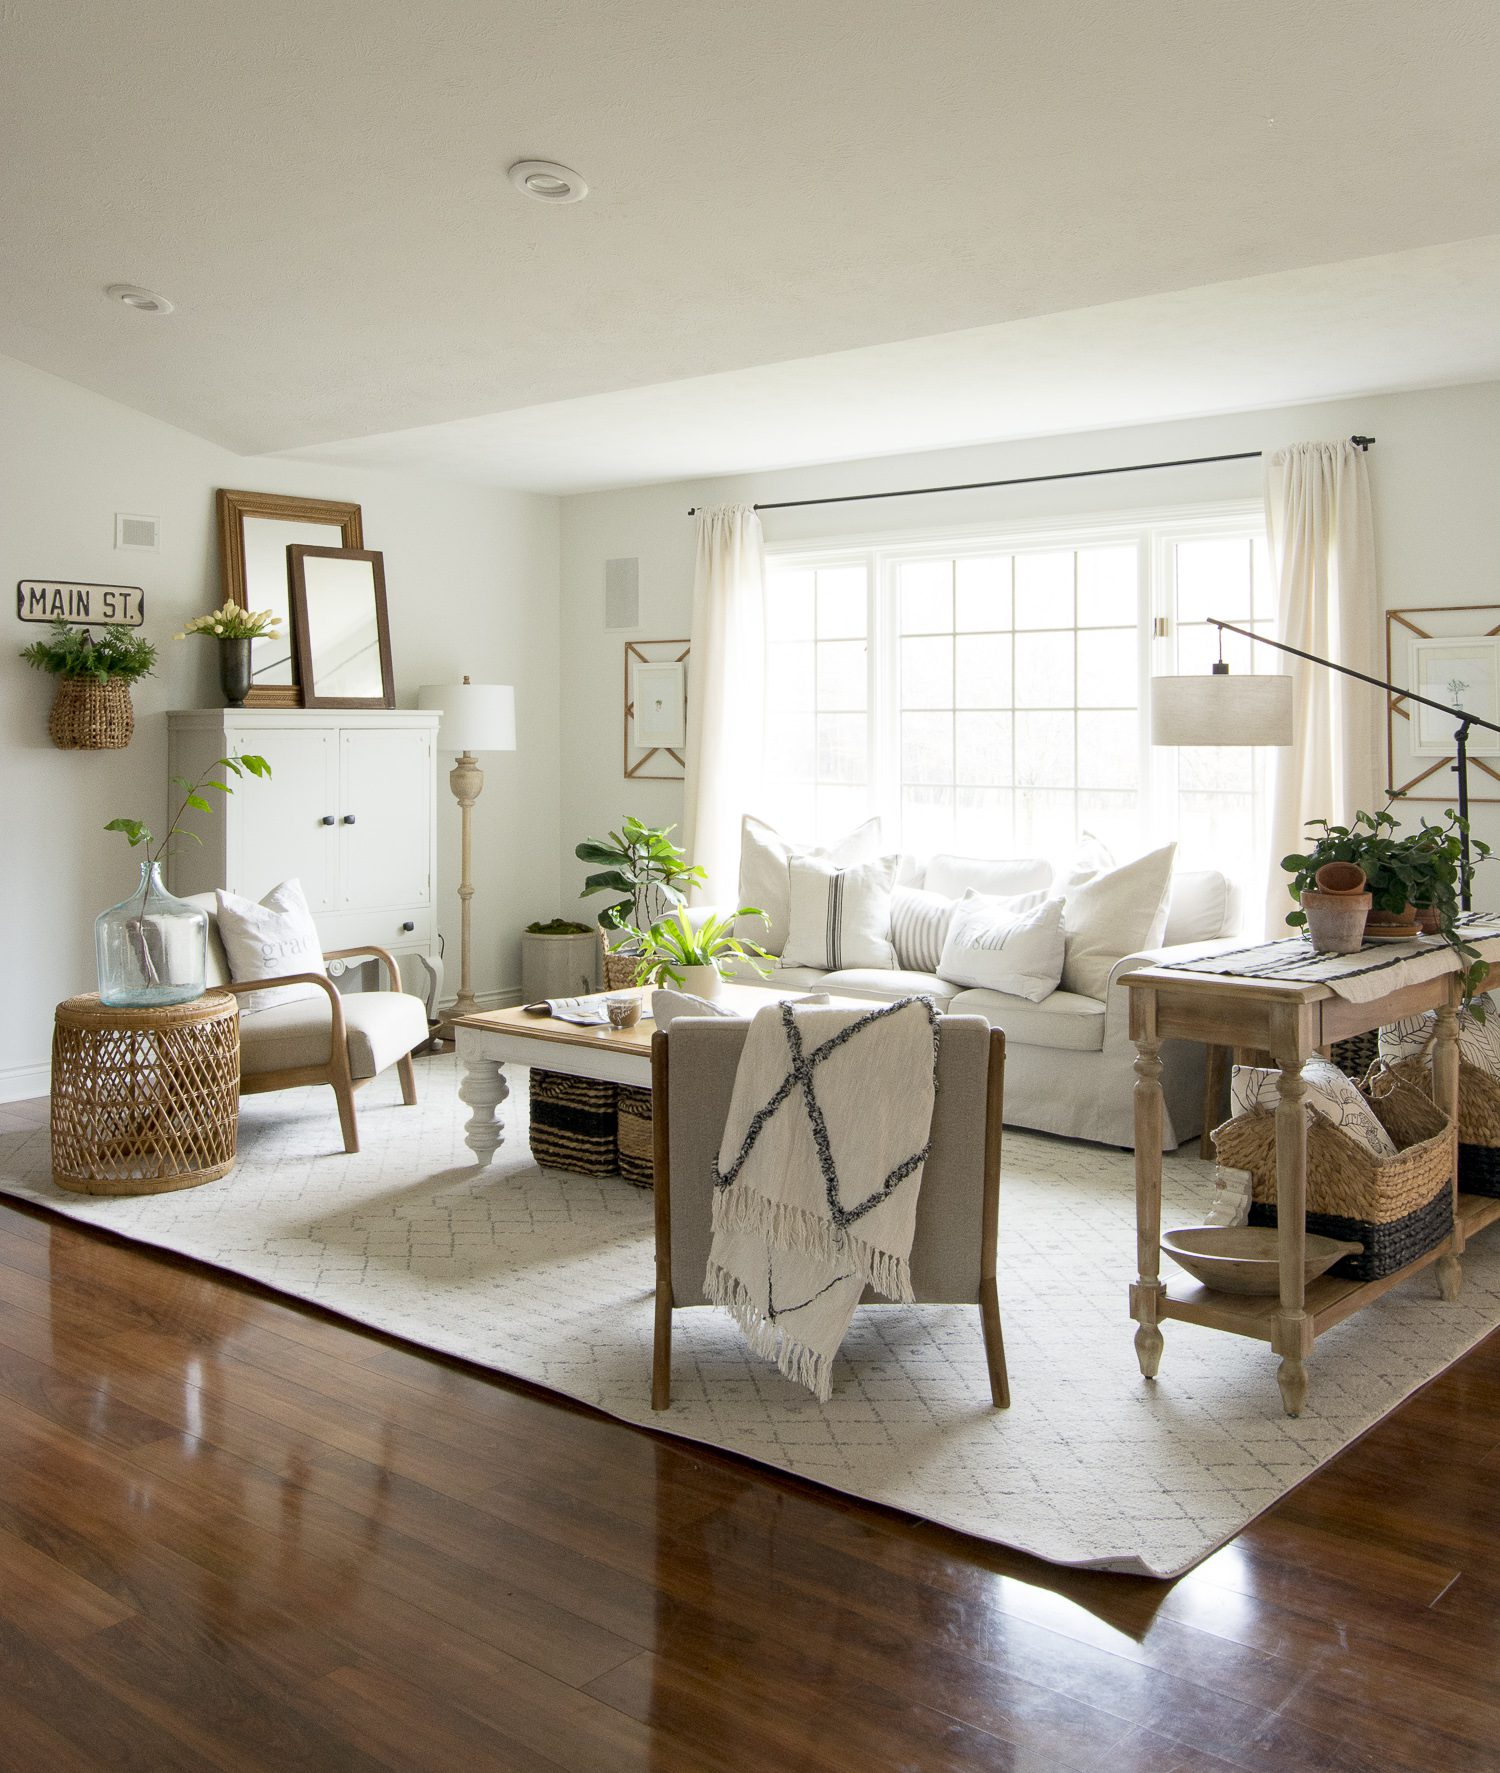 Modern Farmhouse Interior Design Style Guide